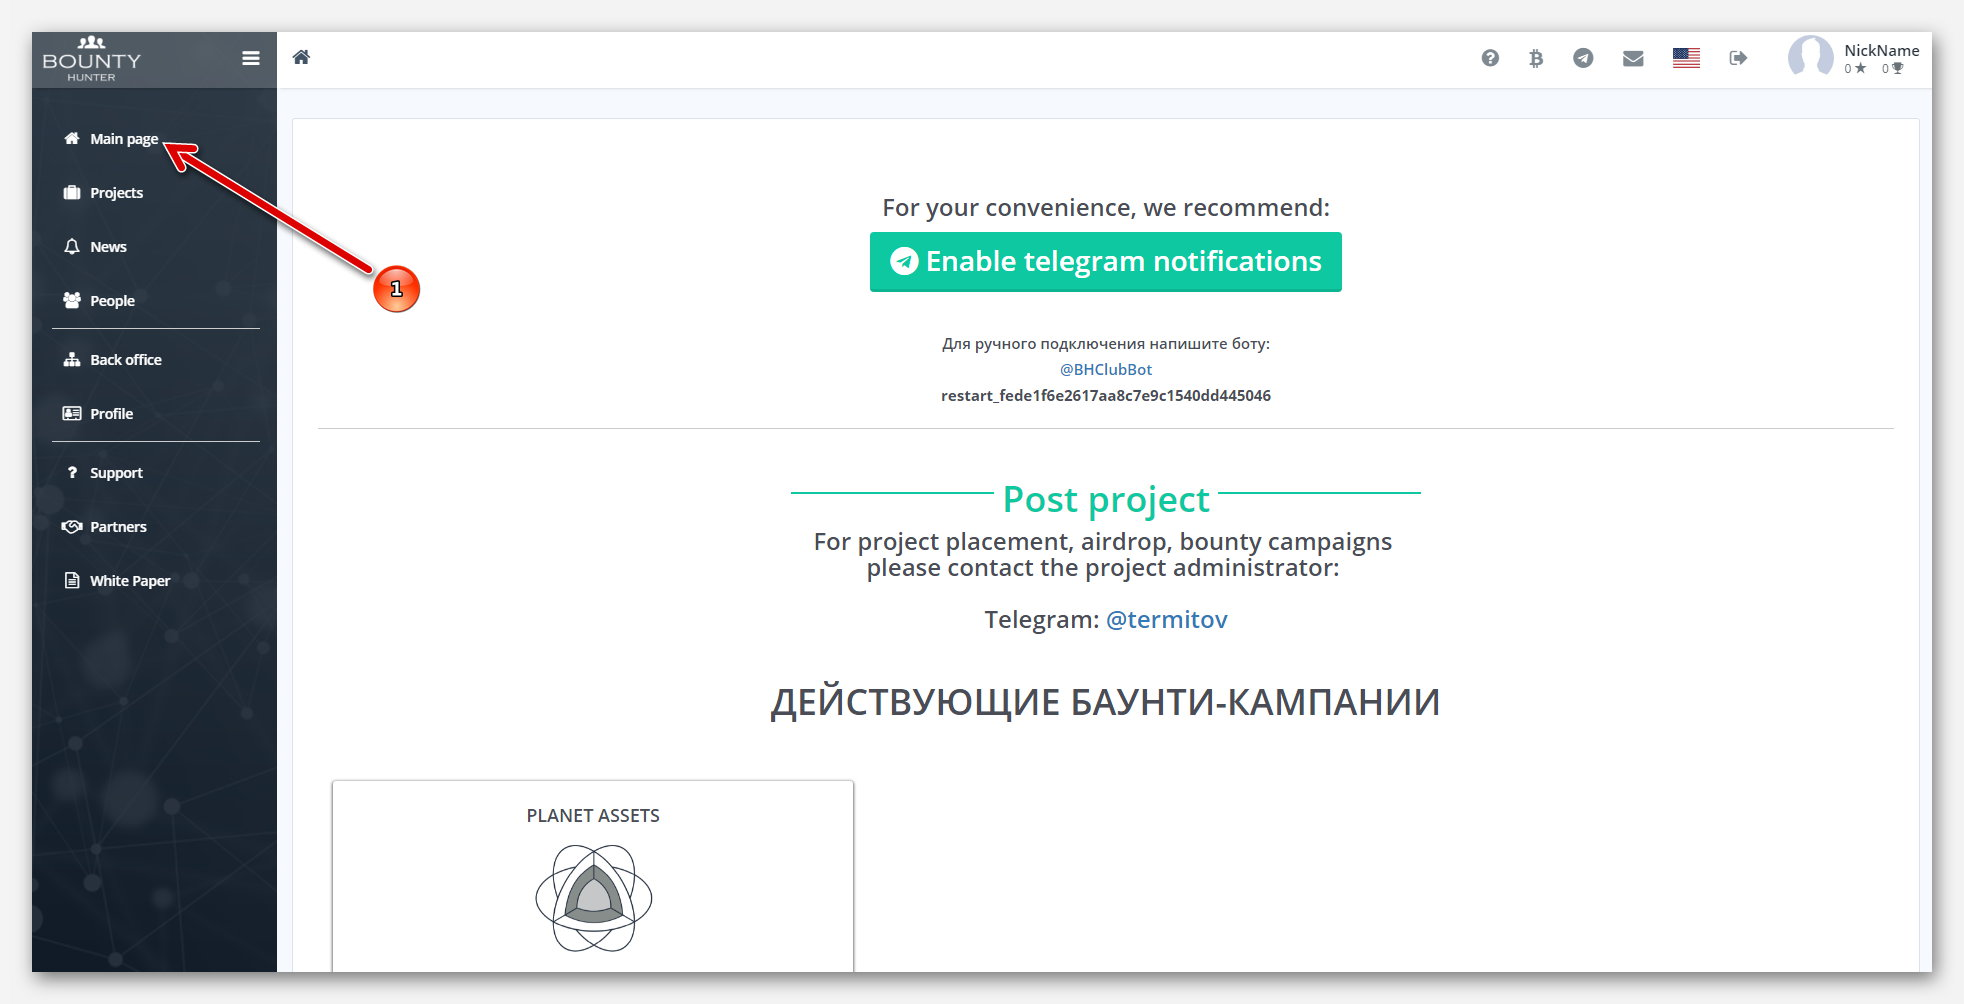 Главная страница на платформе BountyHunter